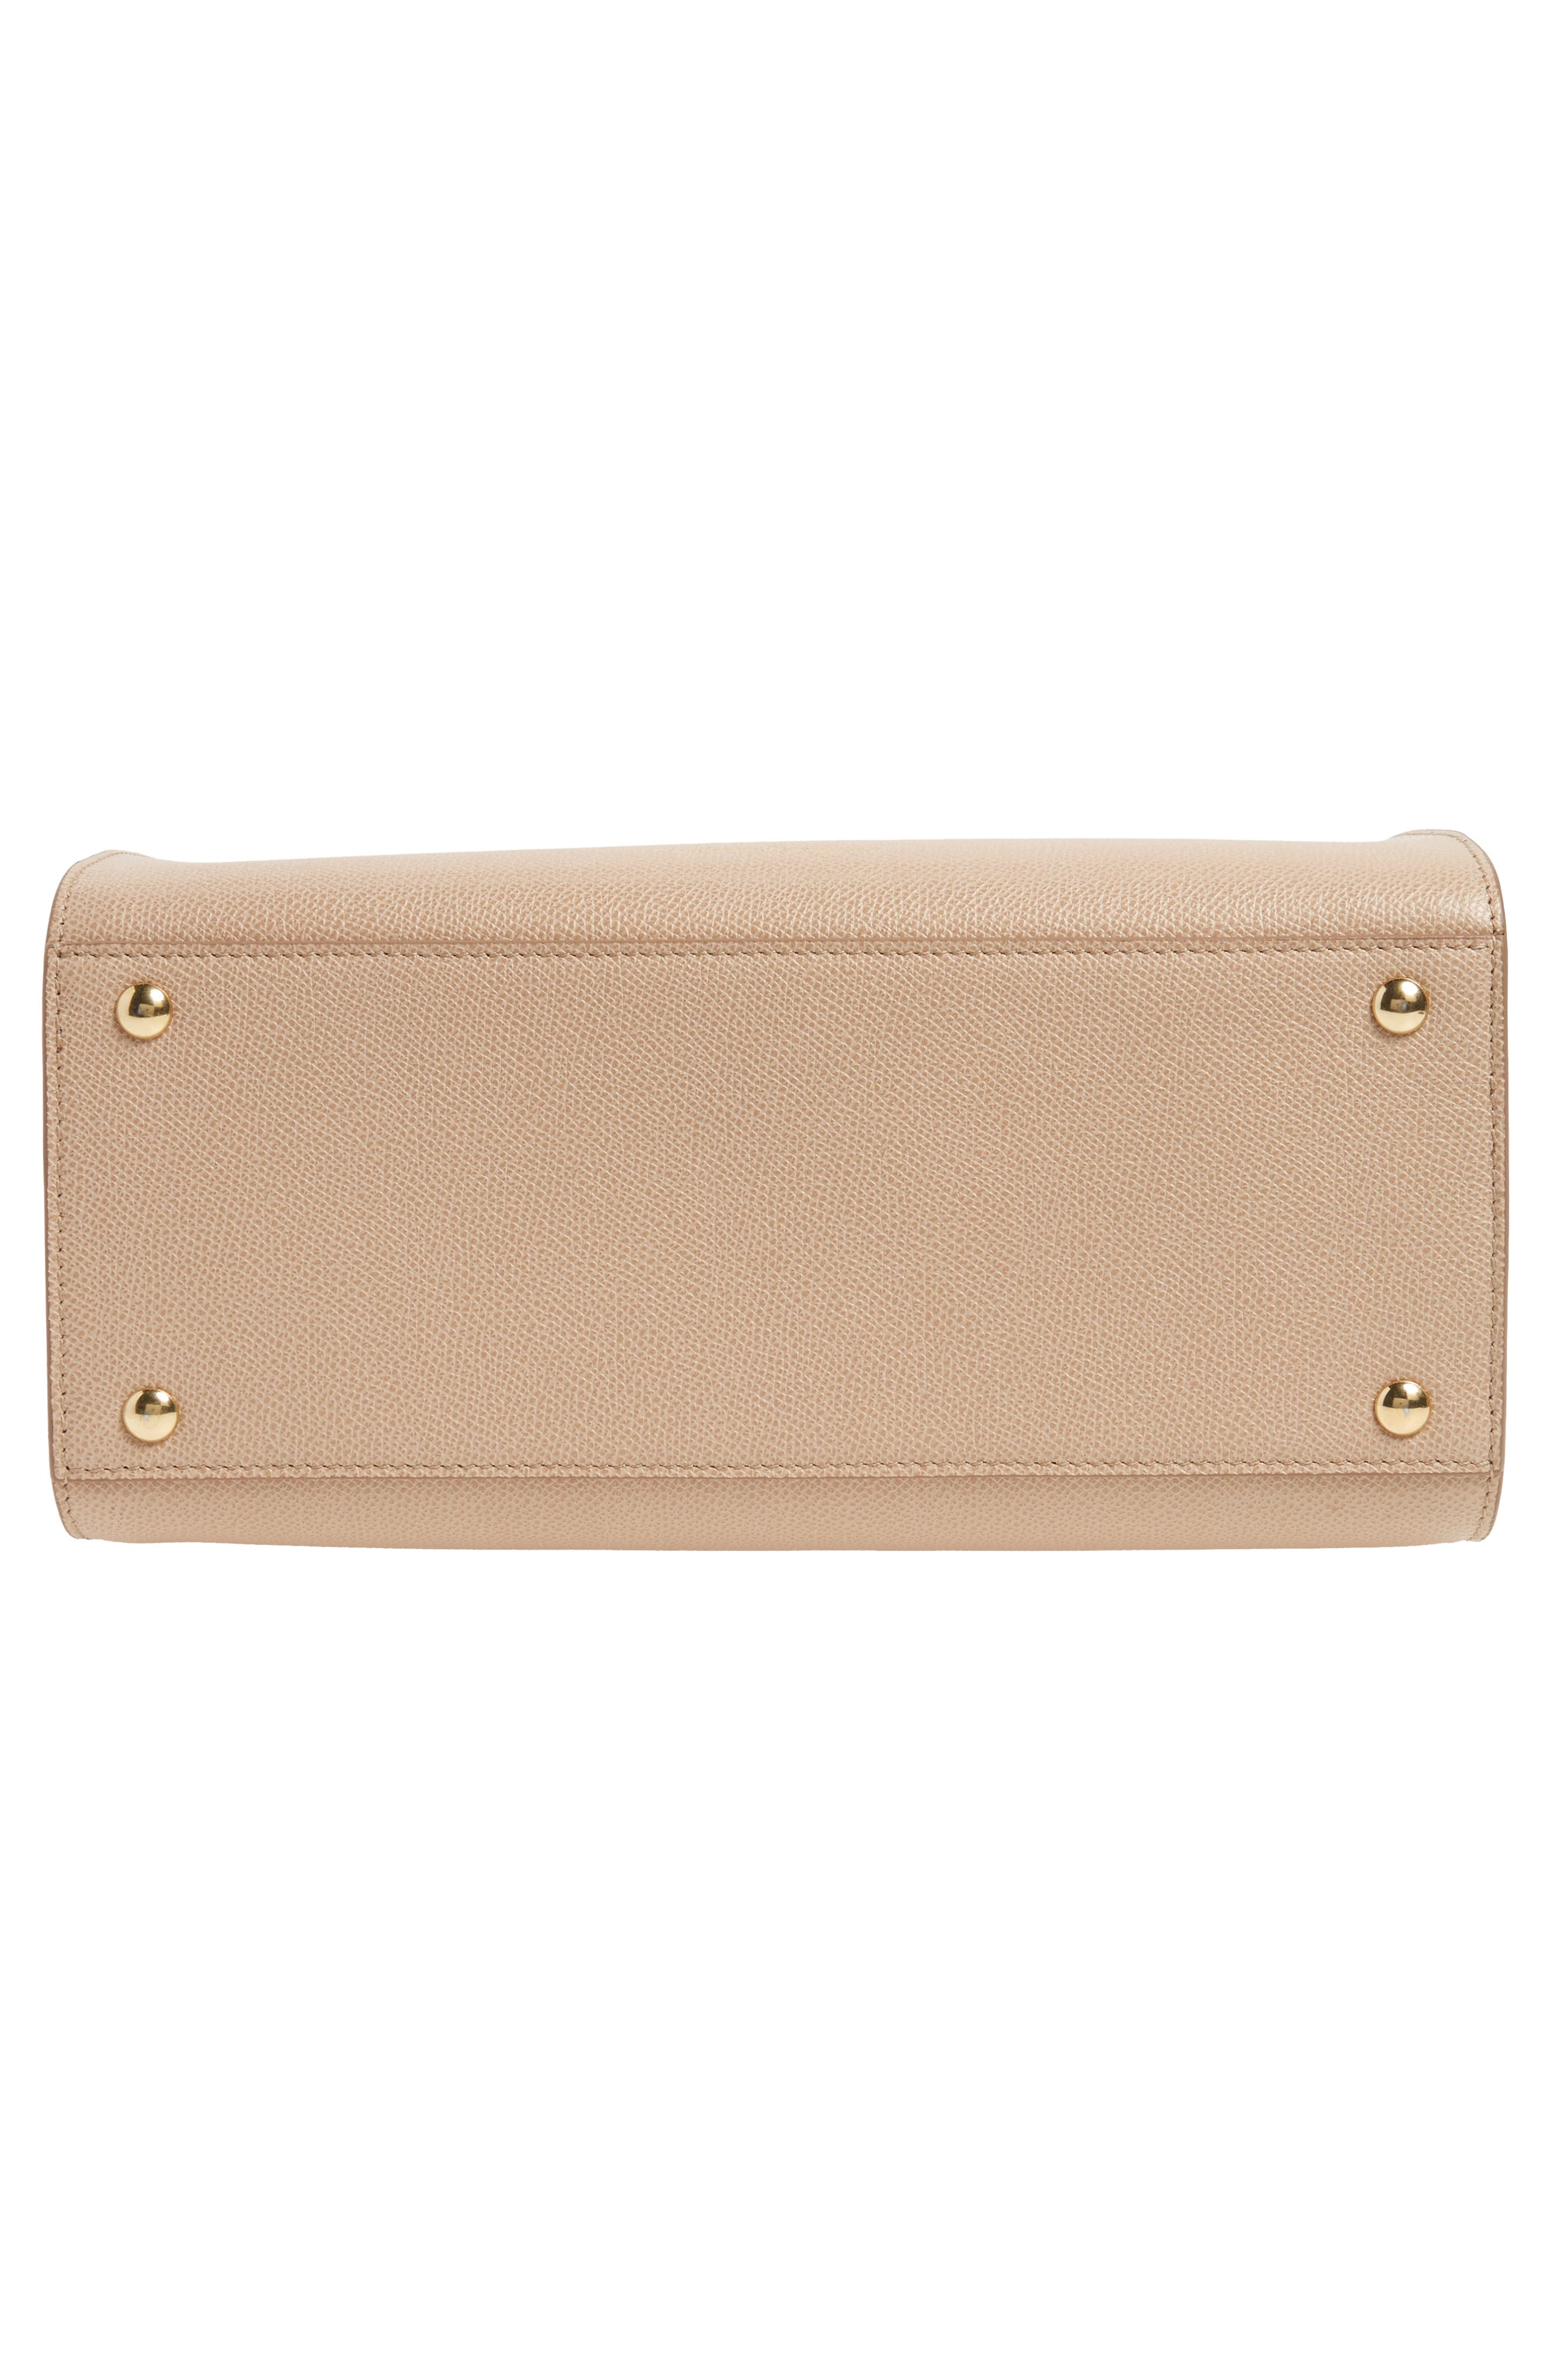 Small Today Leather Satchel,                             Alternate thumbnail 6, color,                             Almond/ Sable